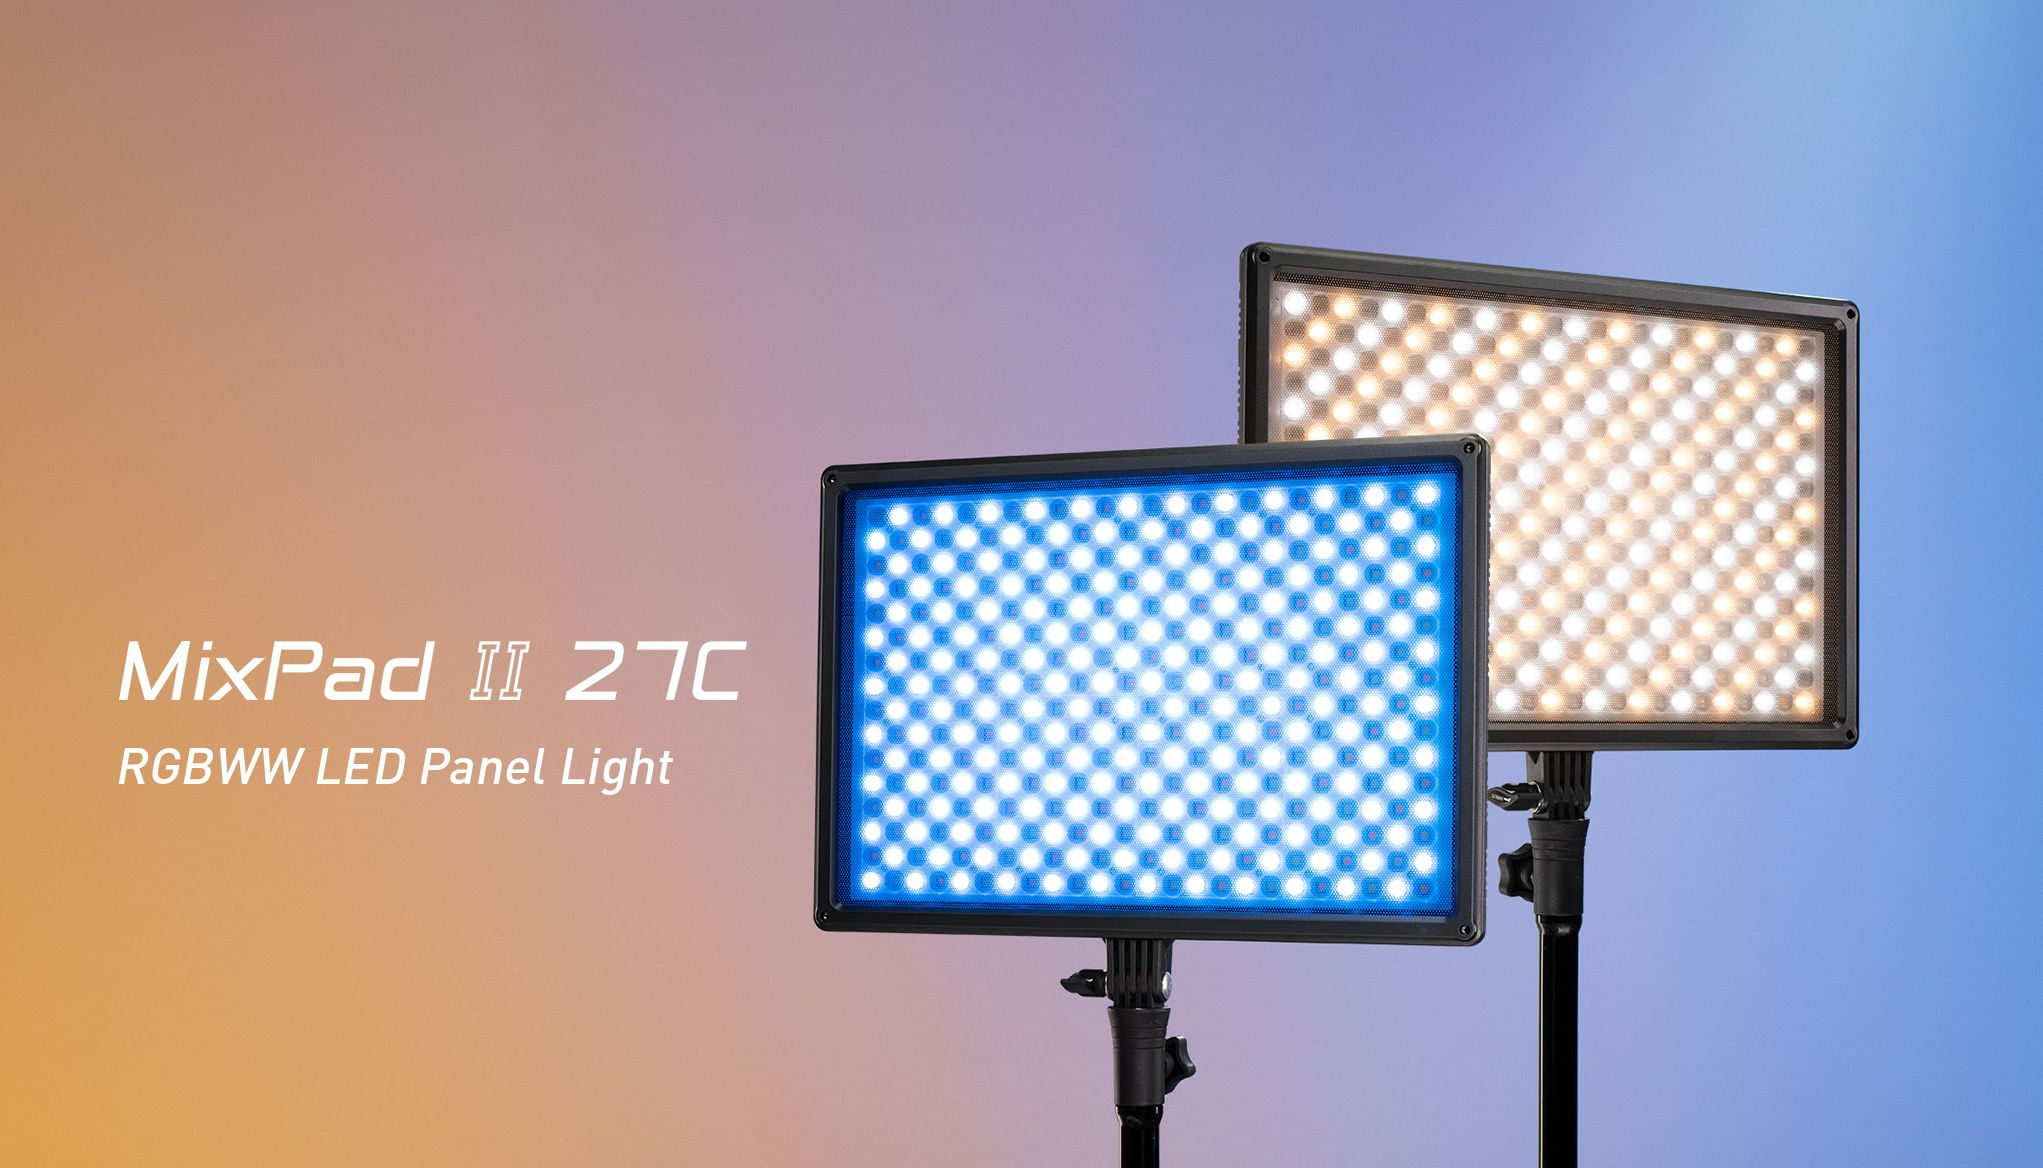 Nanlite MixPad II 27C RGBWW Hard and Soft Light LED Panel